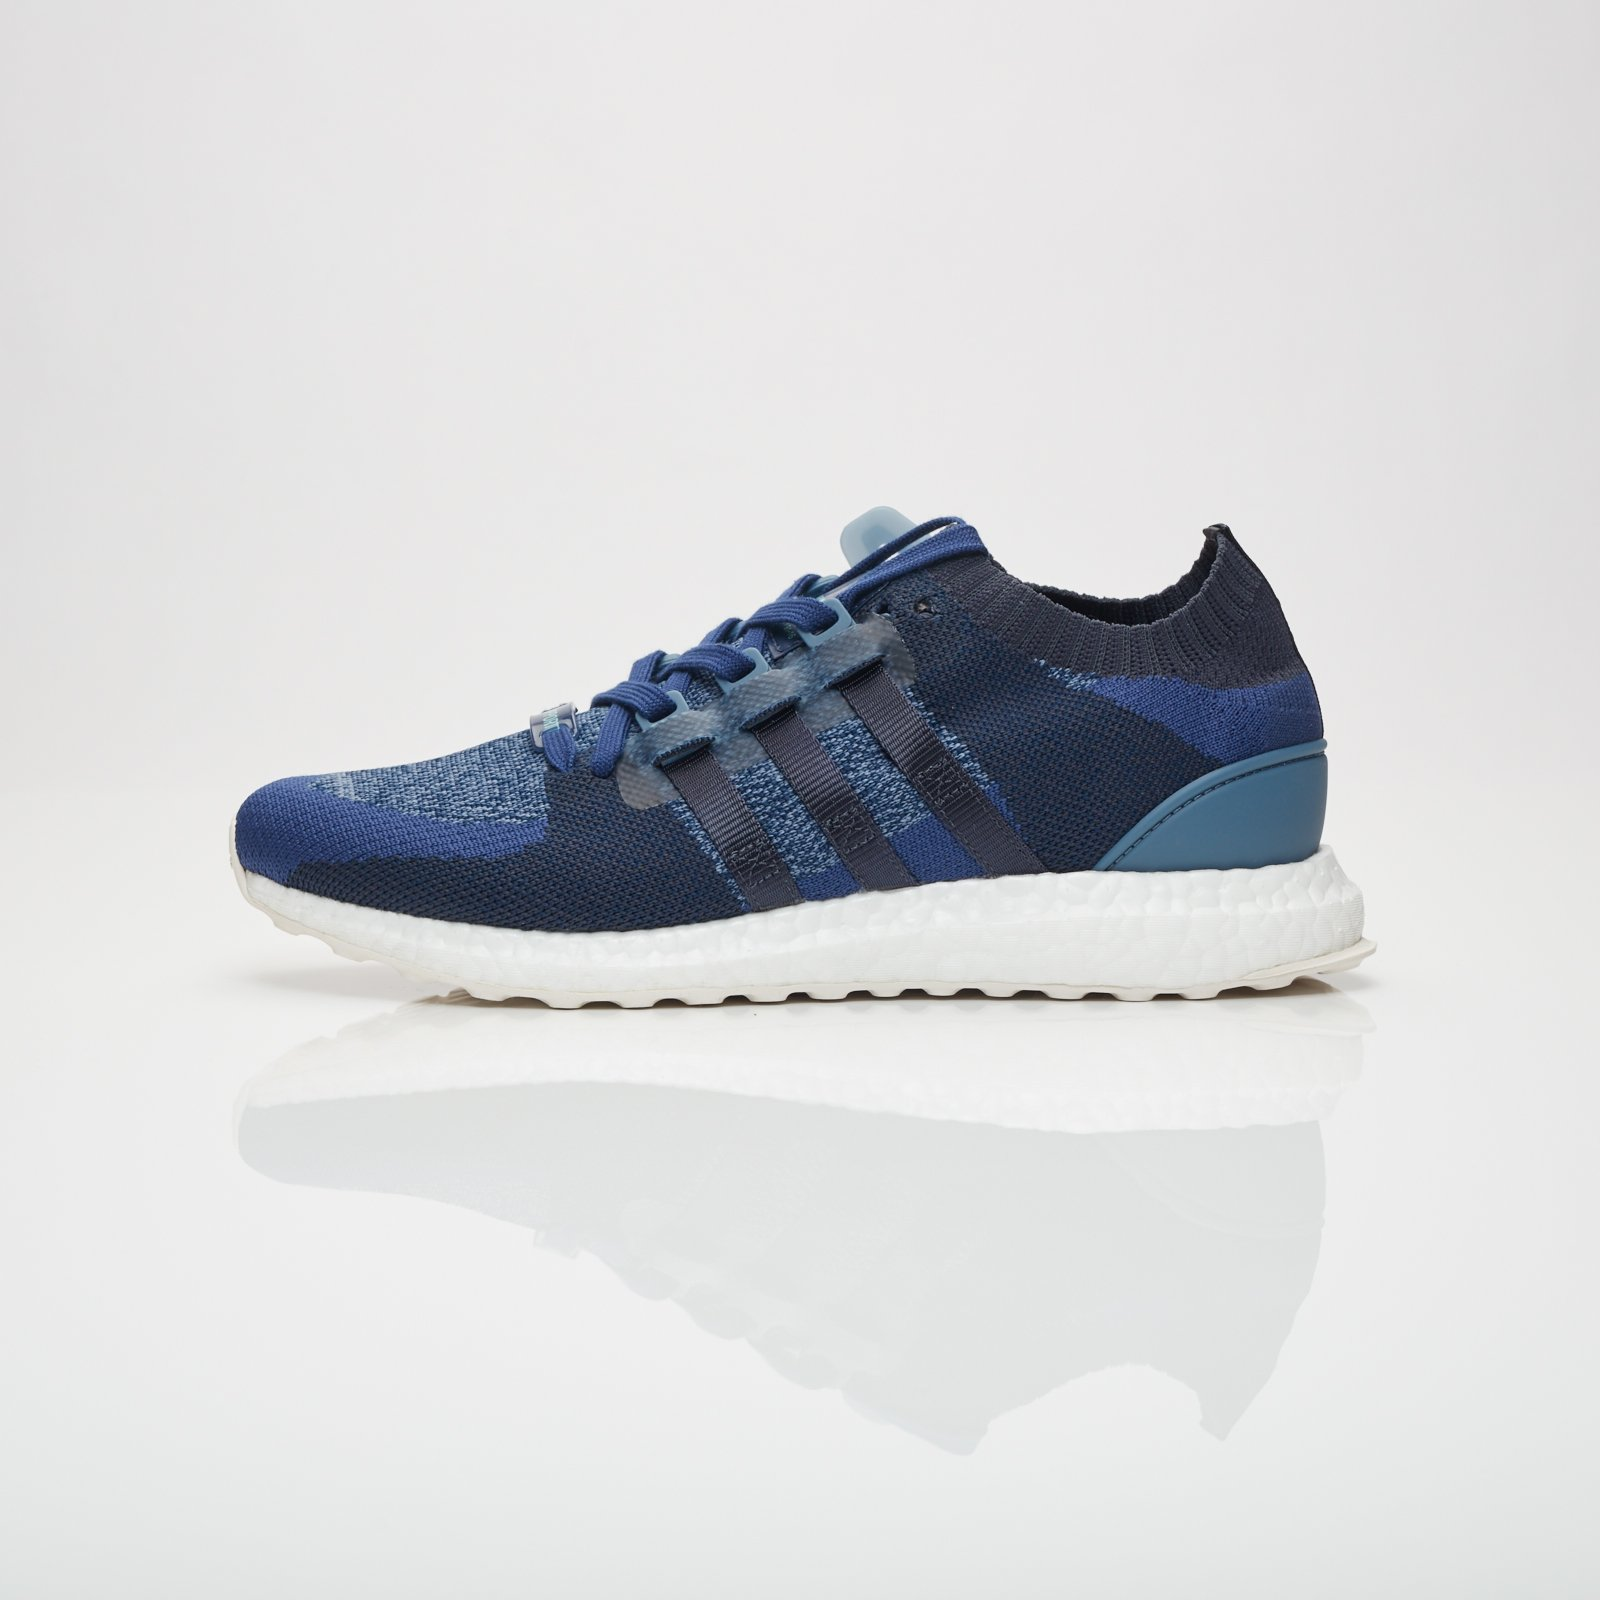 reputable site 223d3 7c766 adidas EQT Support Ultra Primeknit - Cq1895 - Sneakersnstuff ...